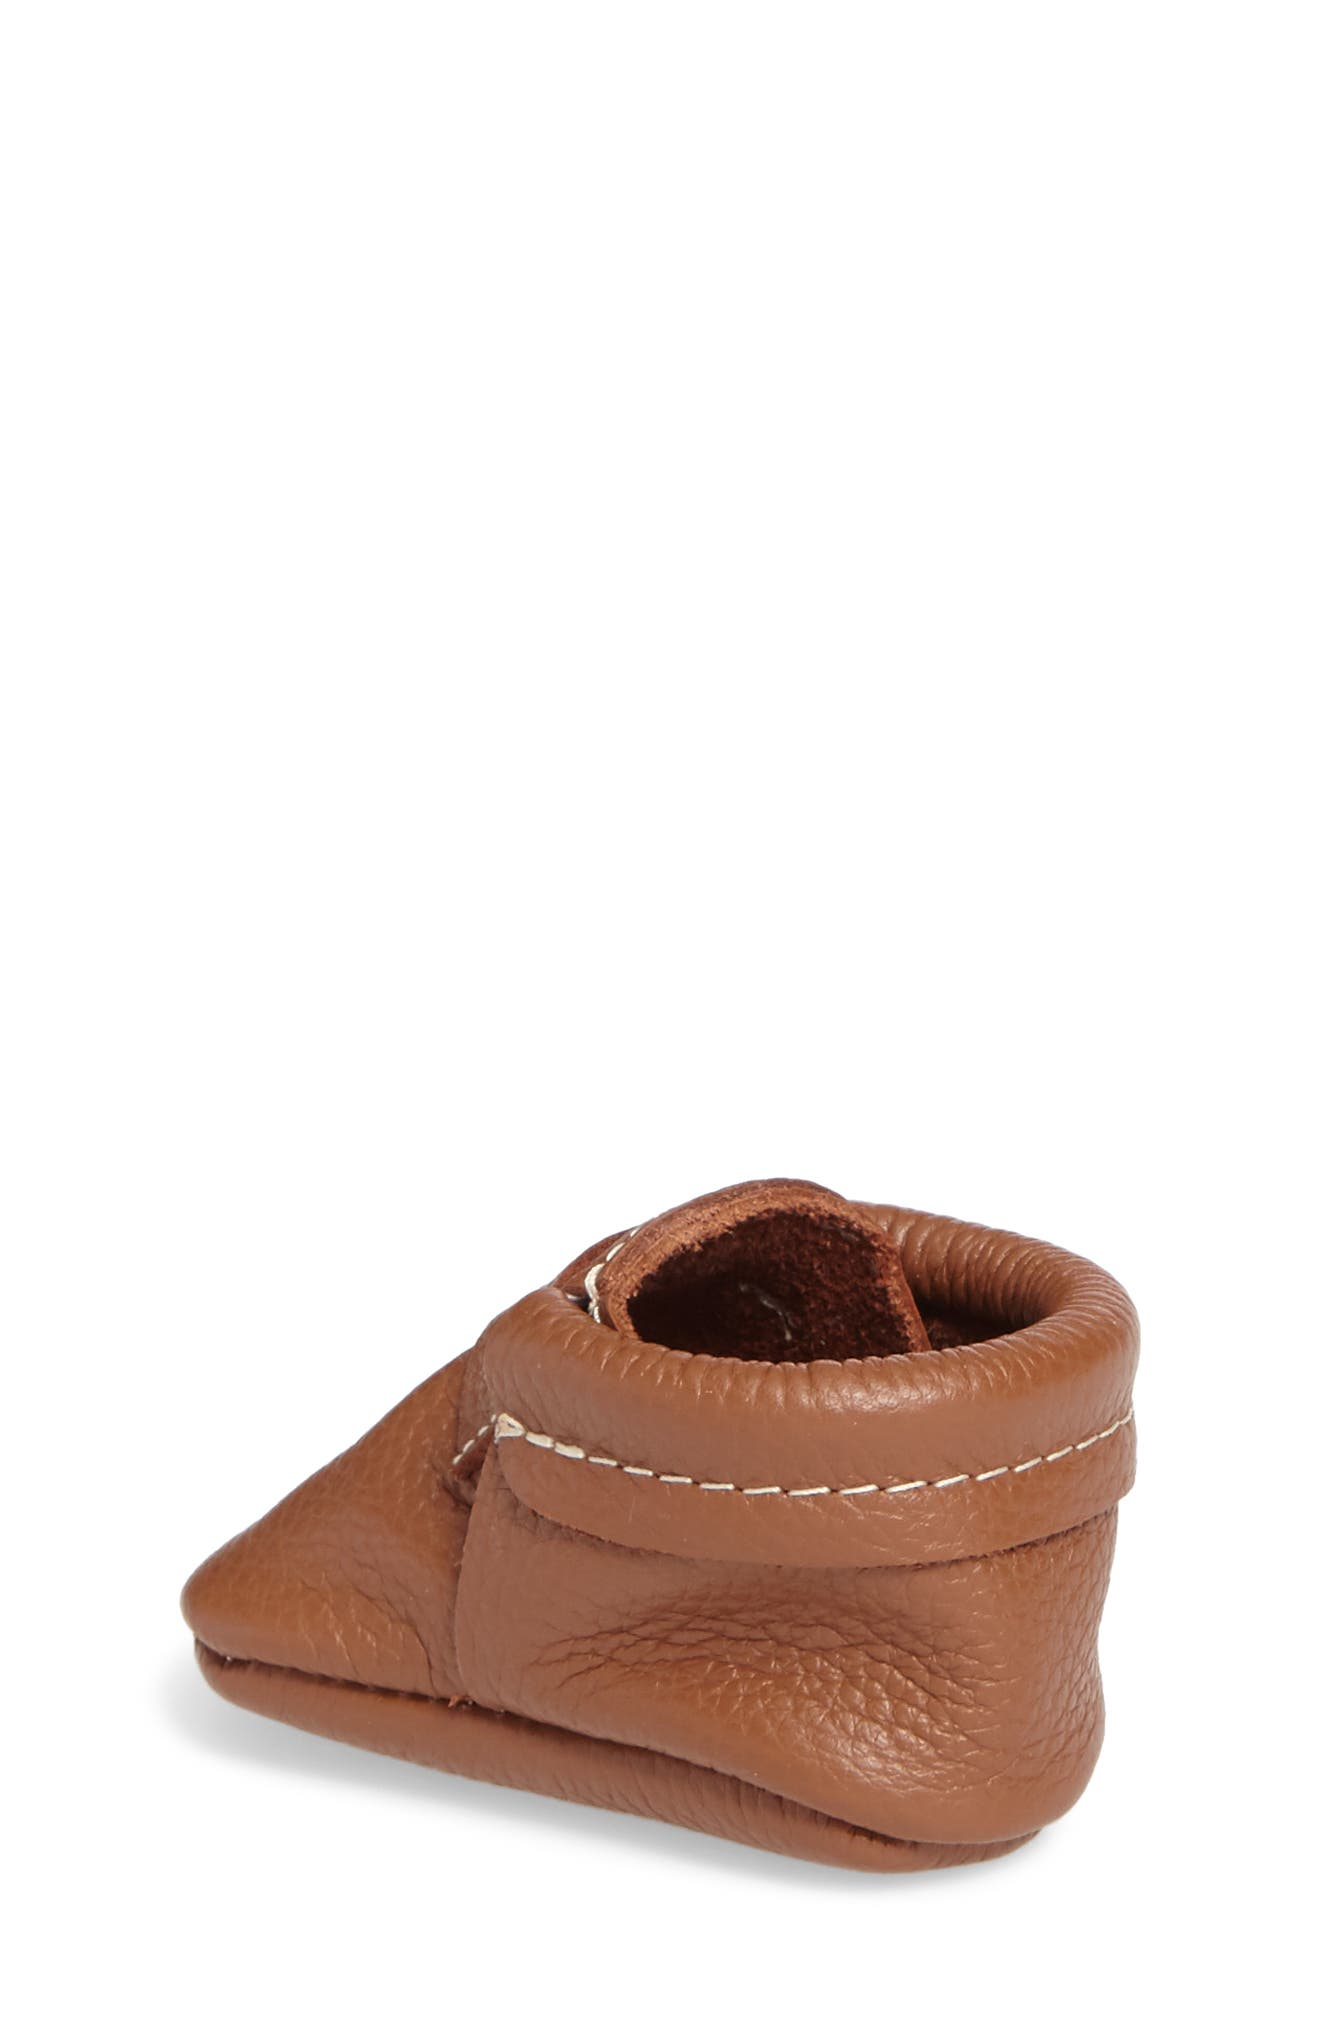 Penny Loafer Crib Shoe,                             Alternate thumbnail 2, color,                             Cognac